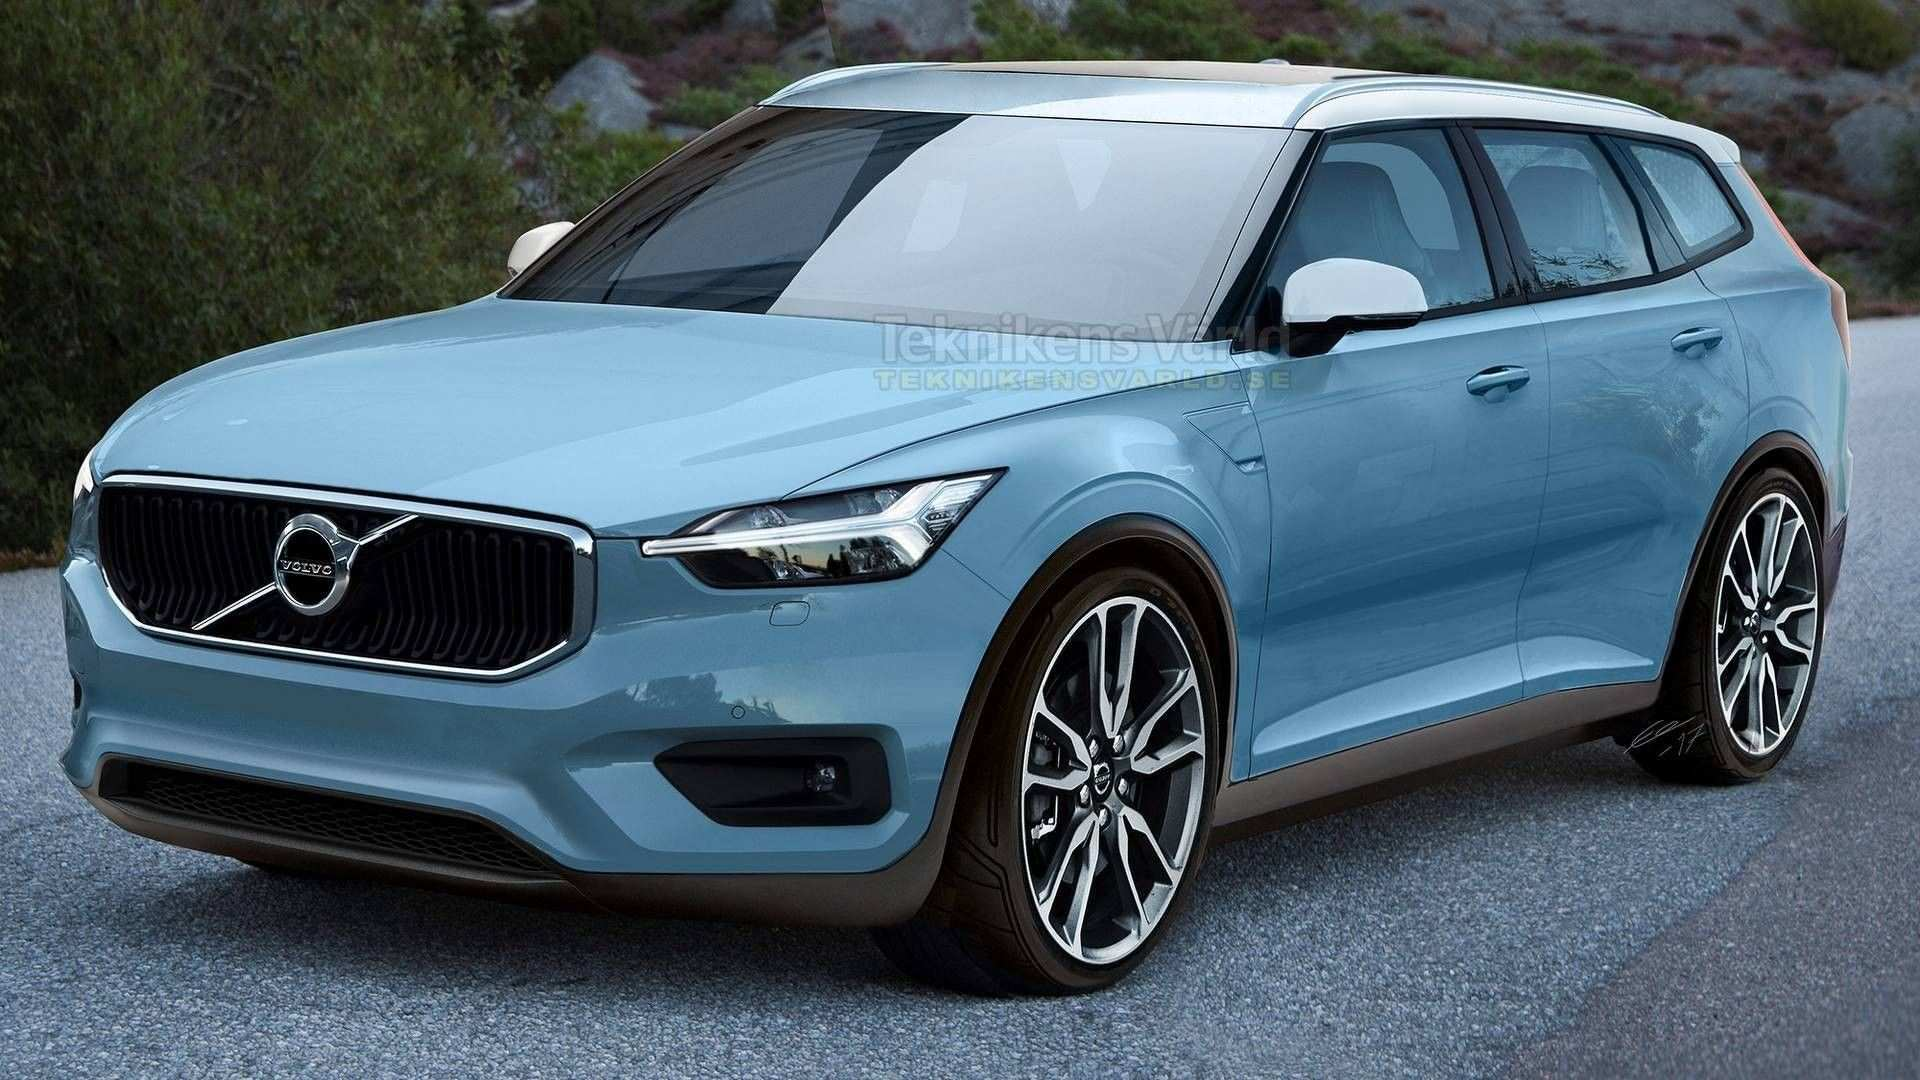 65 The Best 2020 Volvo Xc70 Wagon Price And Release Date